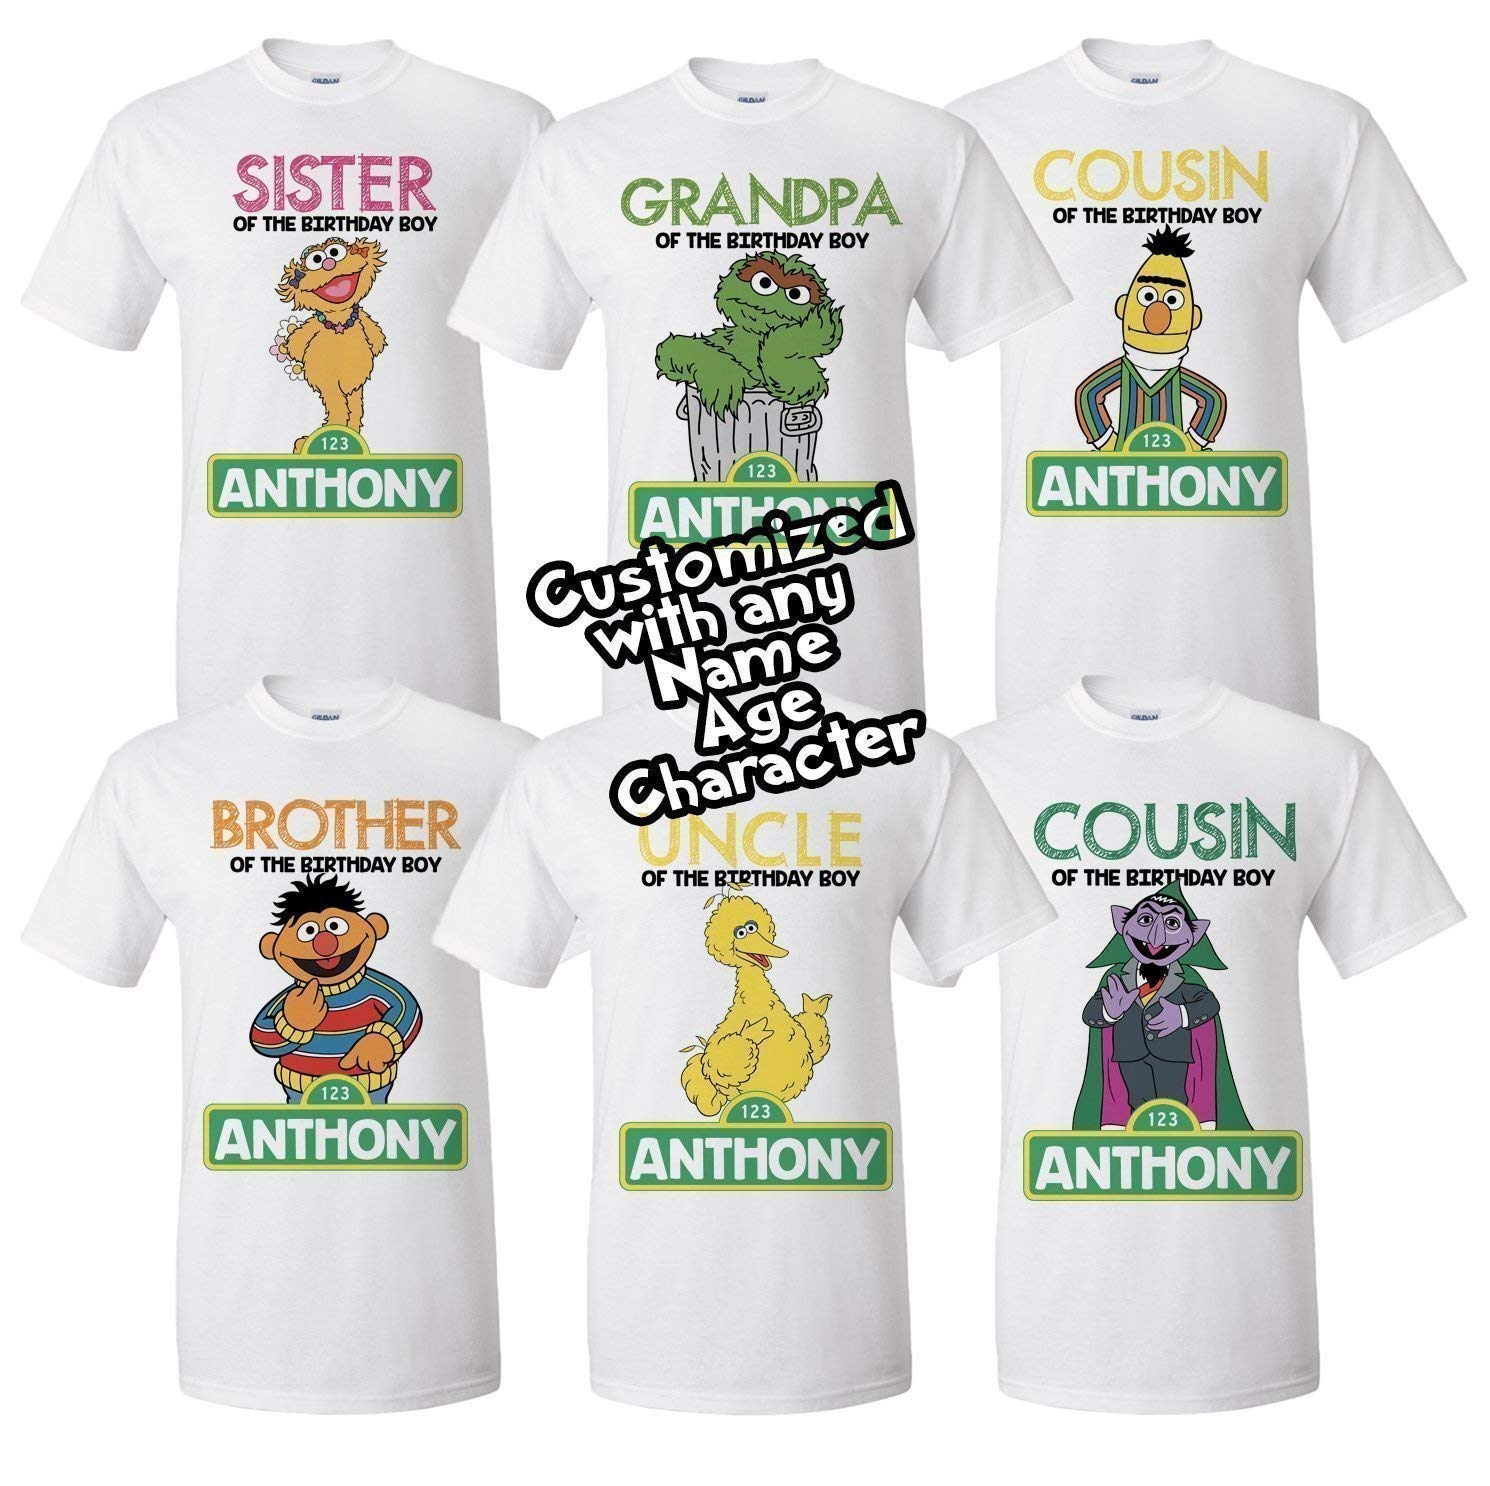 510a3348 Amazon.com: Sesame Street birthday shirt, Elmo Family Birthday Shirts  choose any character for each shirt: Handmade